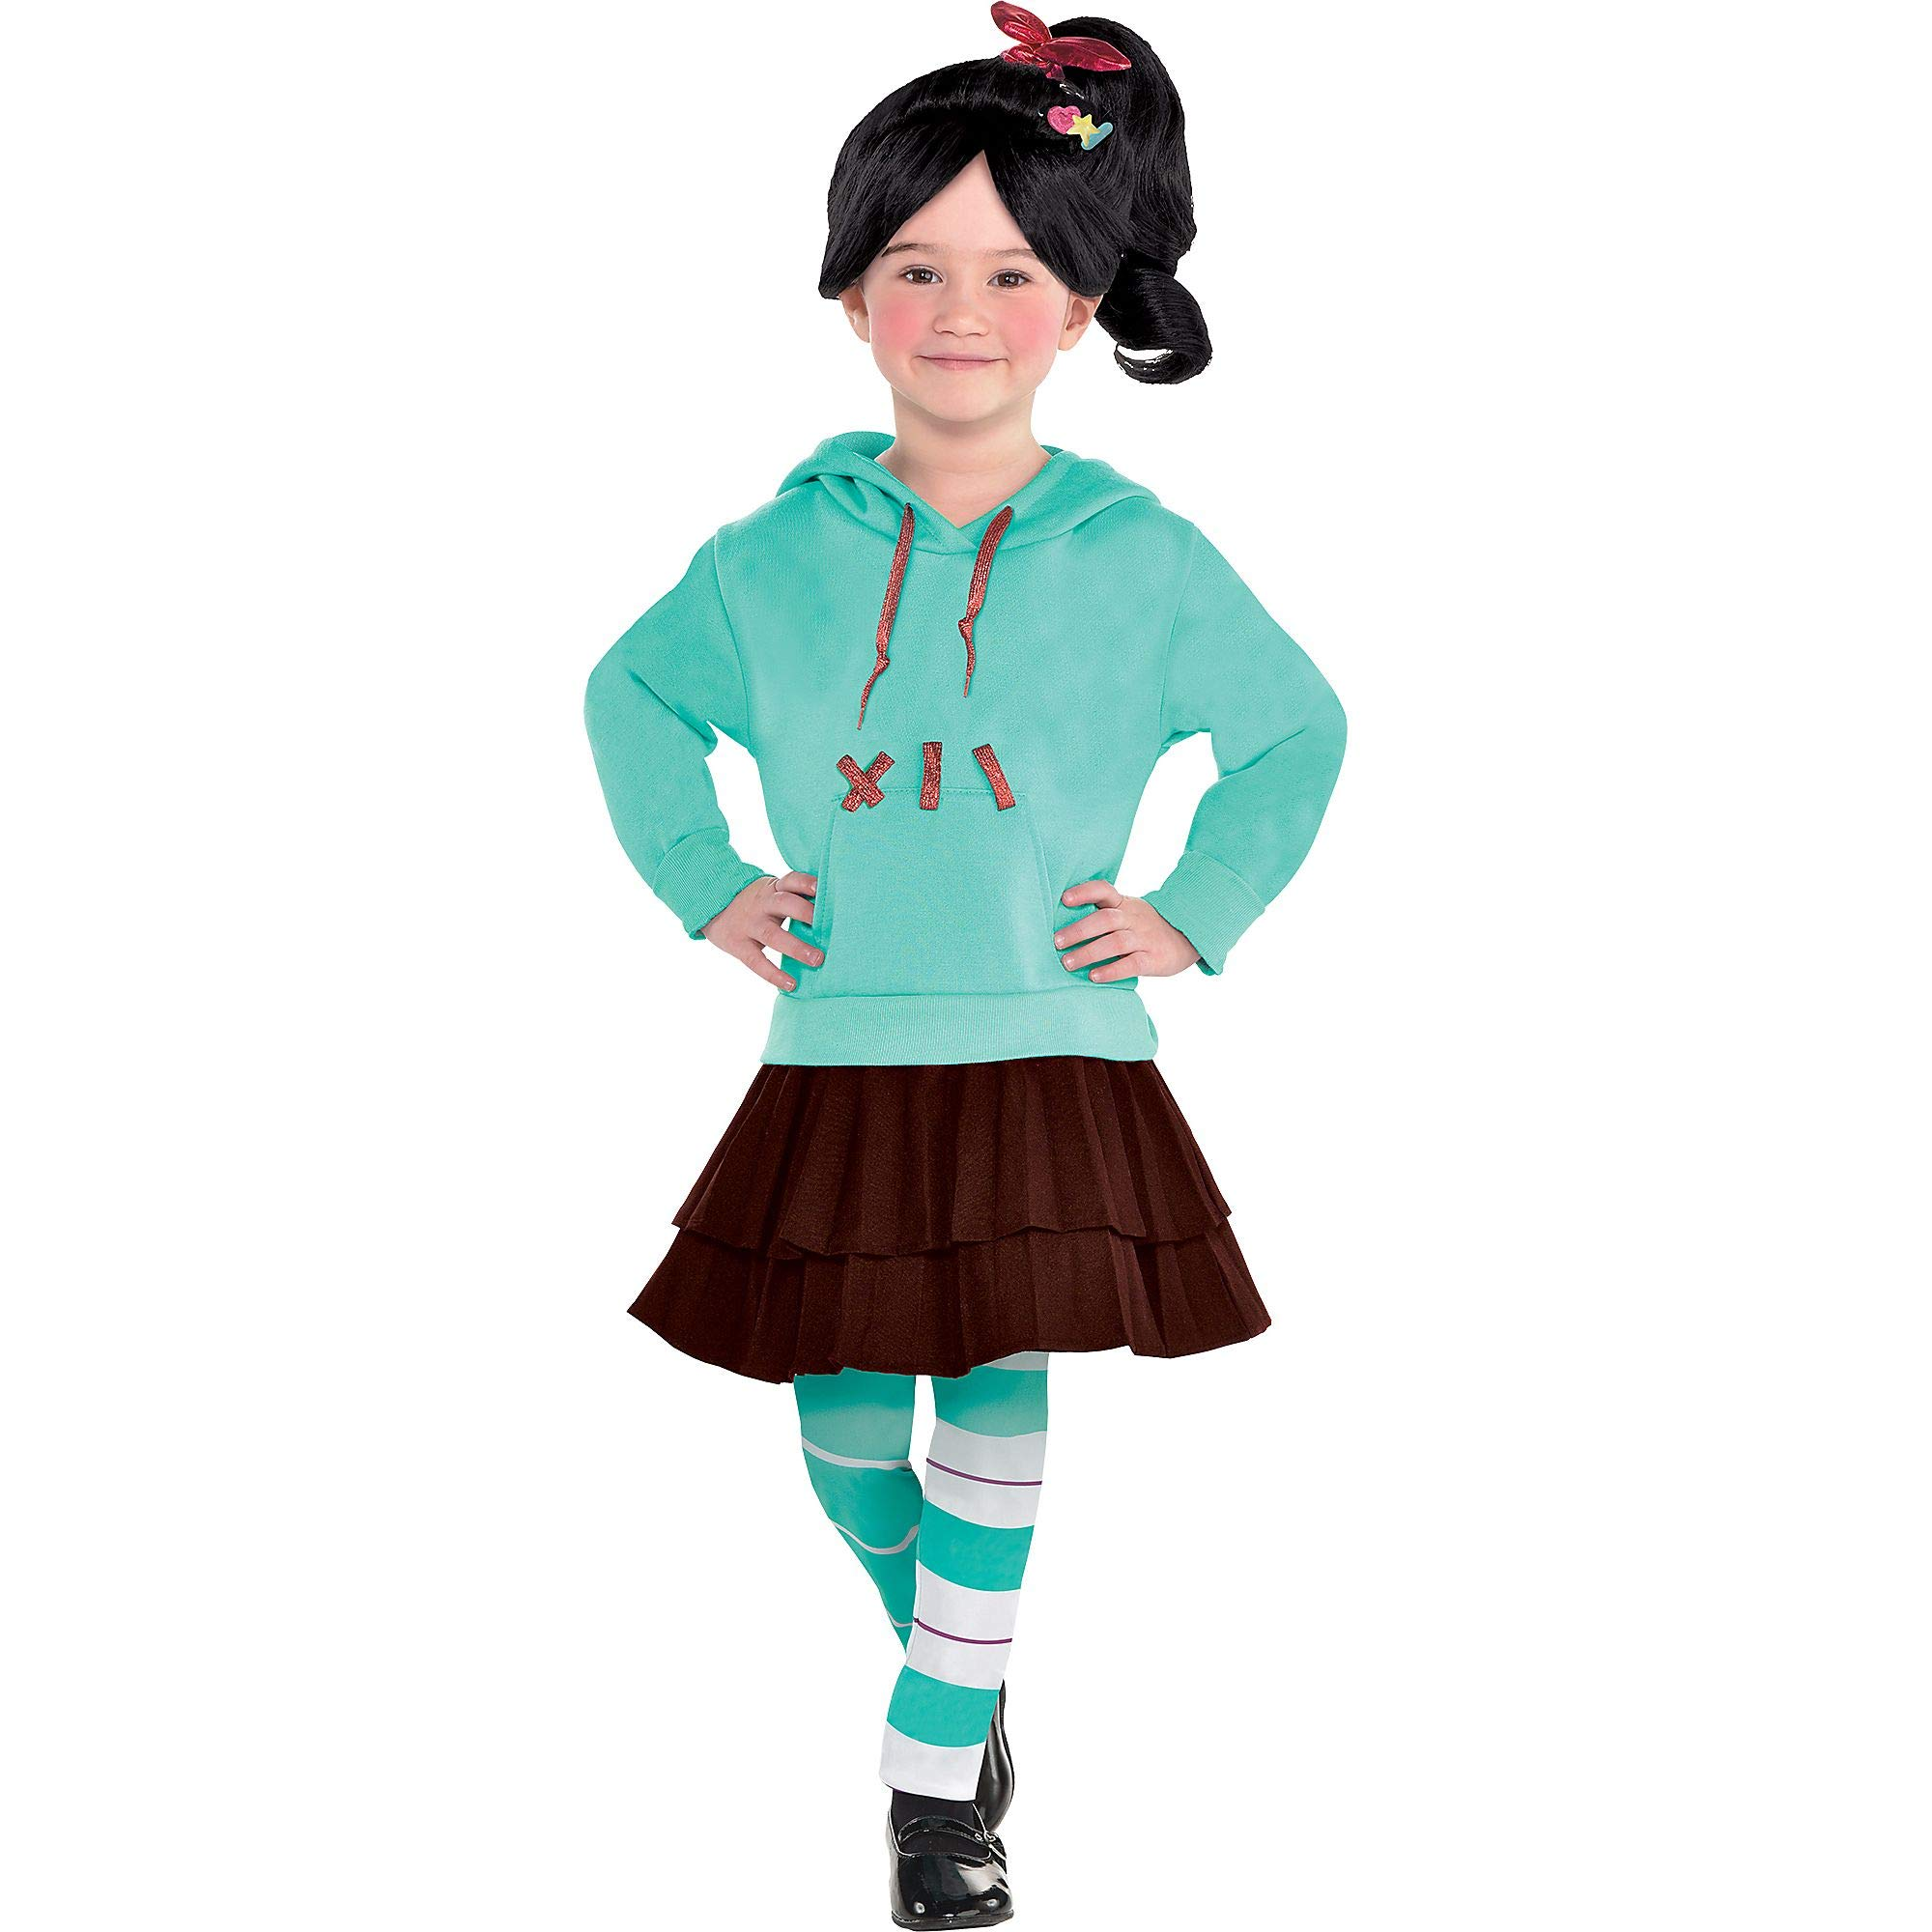 Suit Yourself Wreck-It Ralph 2 Vanellope Costume for Girls, Size Small, Includes a Dress, Leggings, Hair Clips, and Wig by SUIT YOURSELF